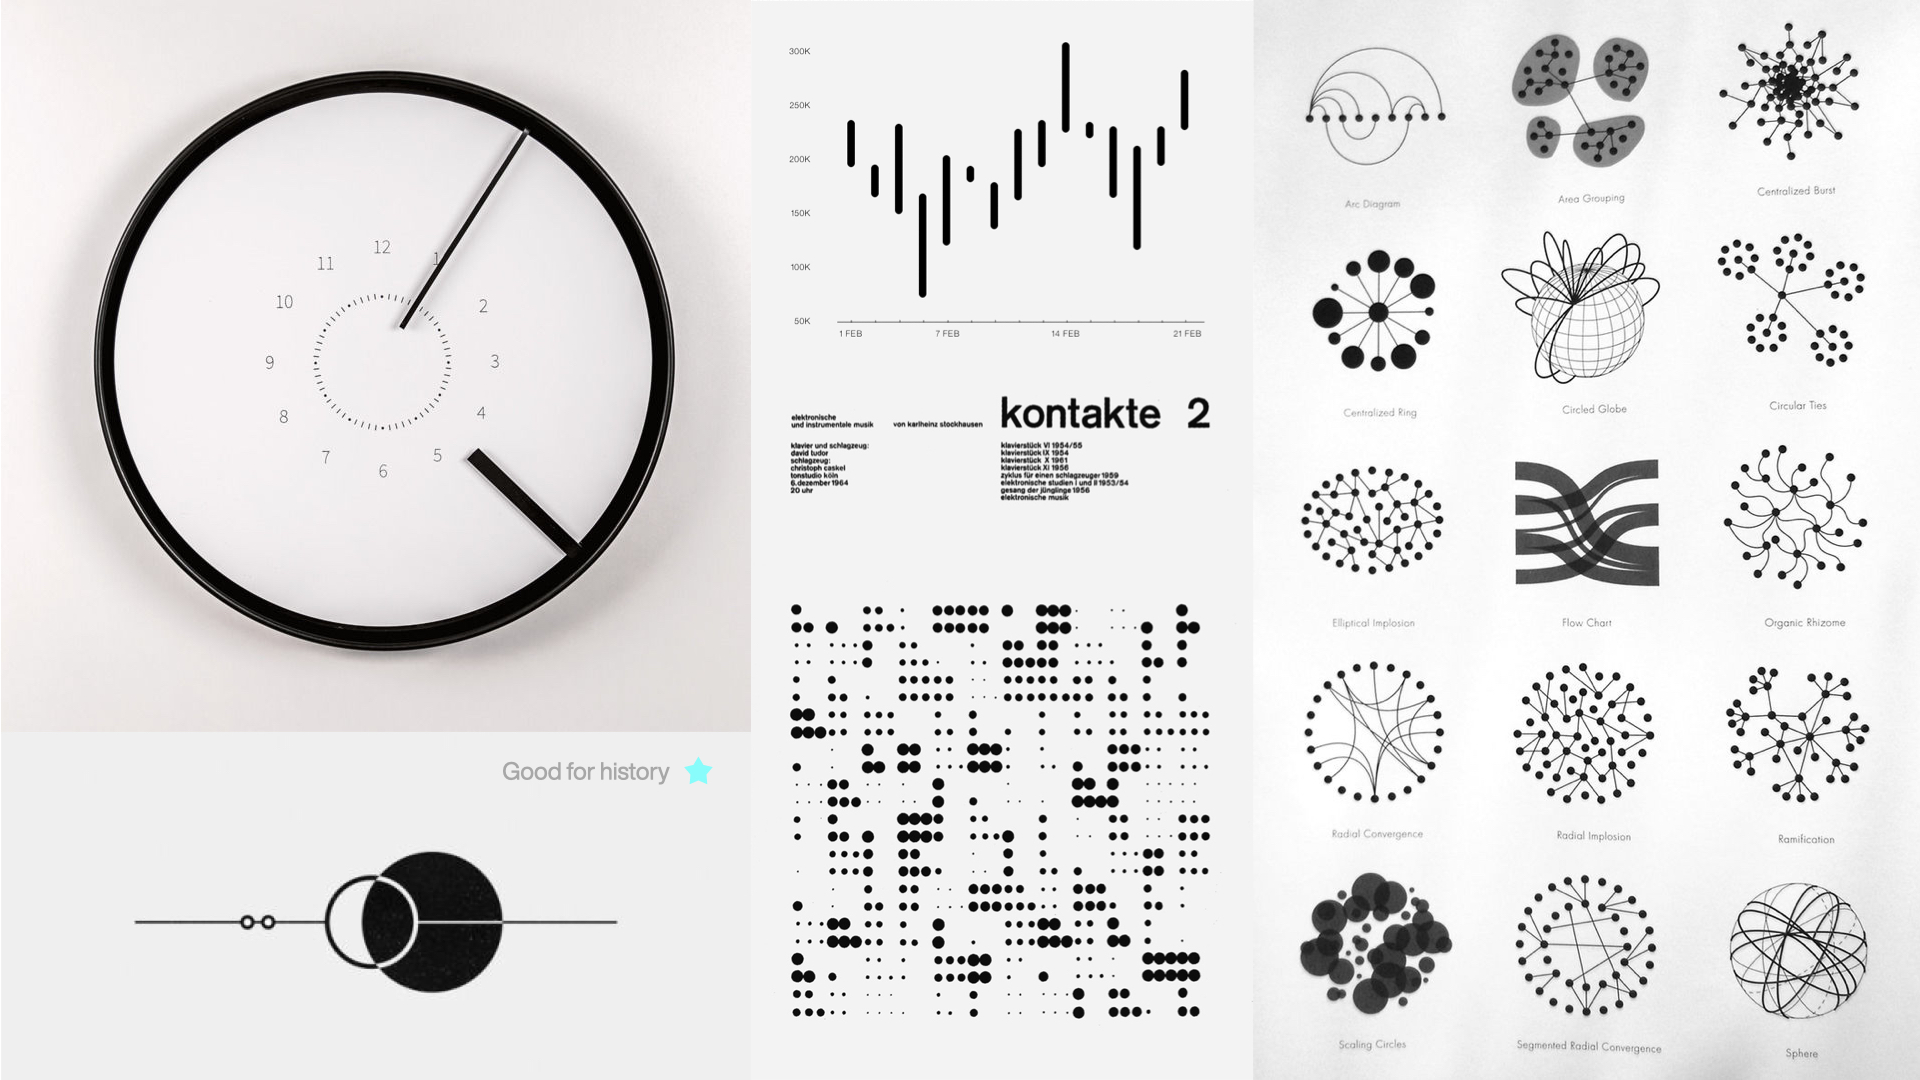 Collage of metrics, graphs, and graphical elements composing the visual mood-board.